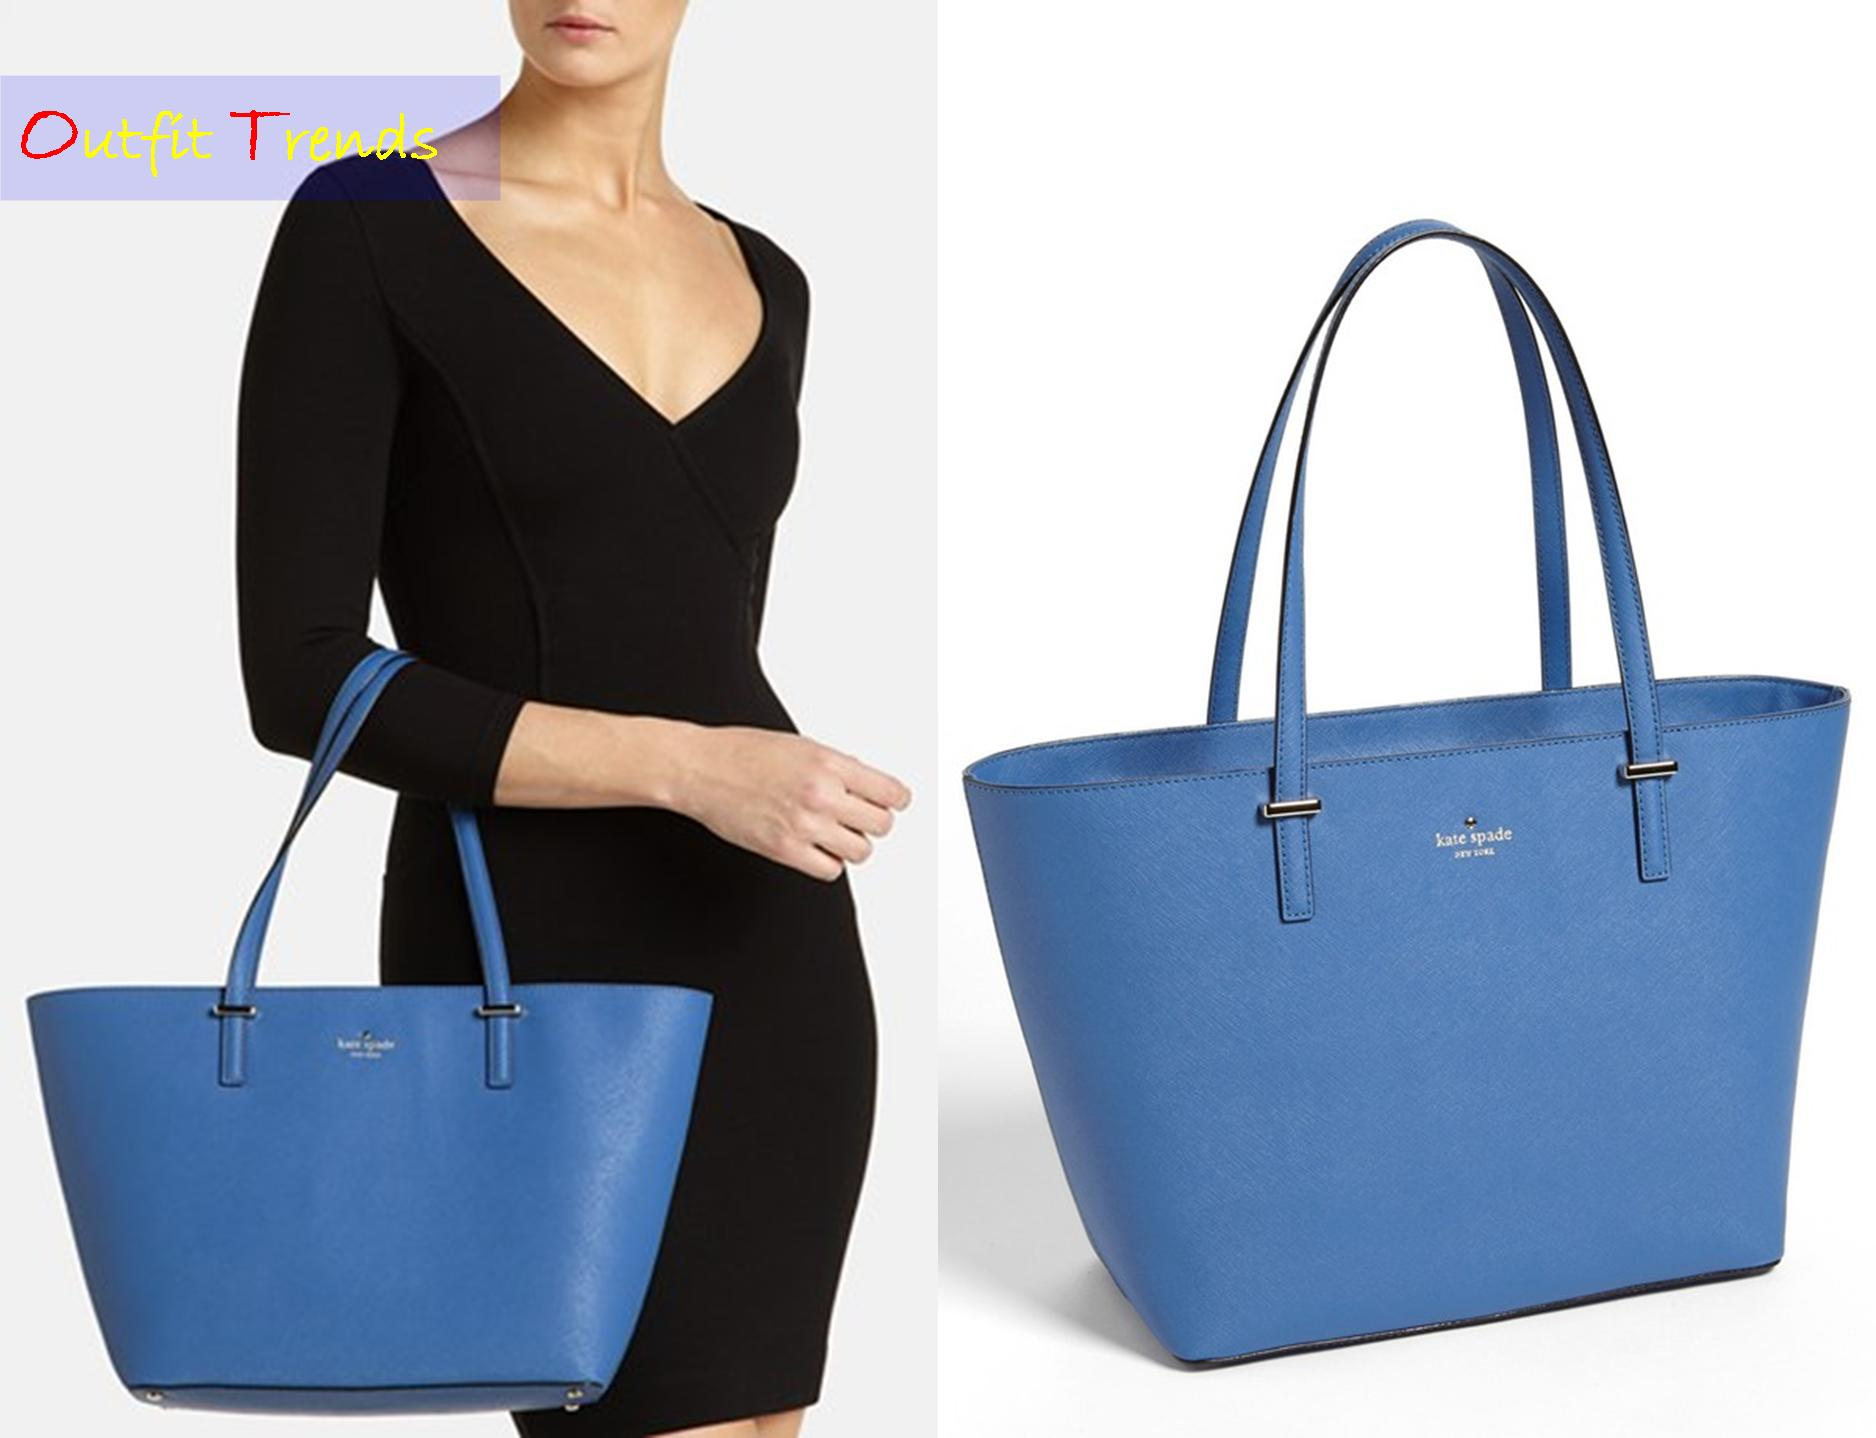 13 Most Fashionable and Stylish Tote Bags for Women